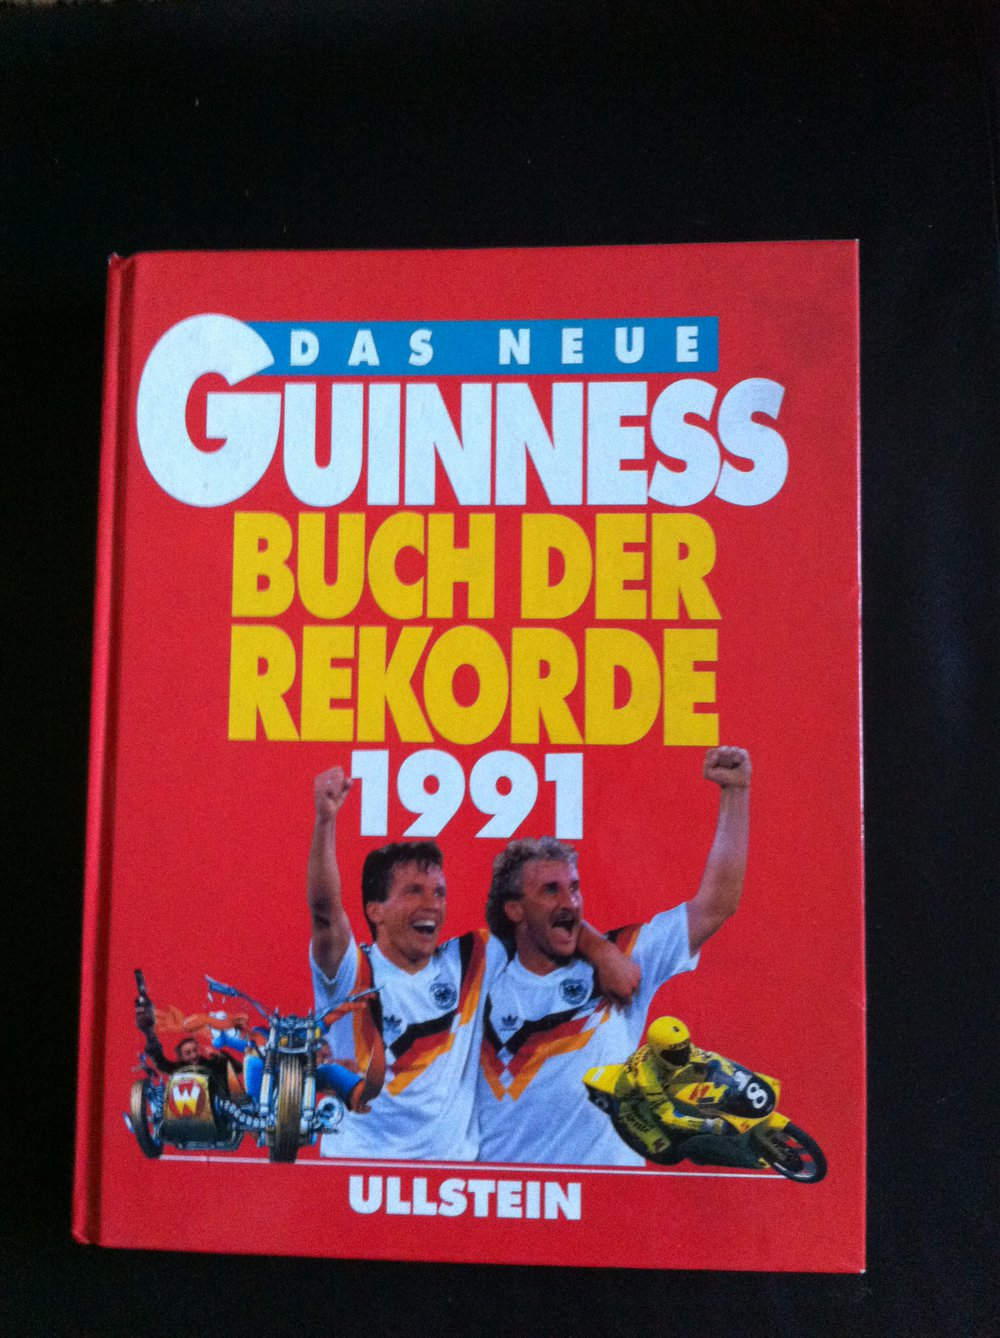 guinness buch der rekorde von 1991. Black Bedroom Furniture Sets. Home Design Ideas